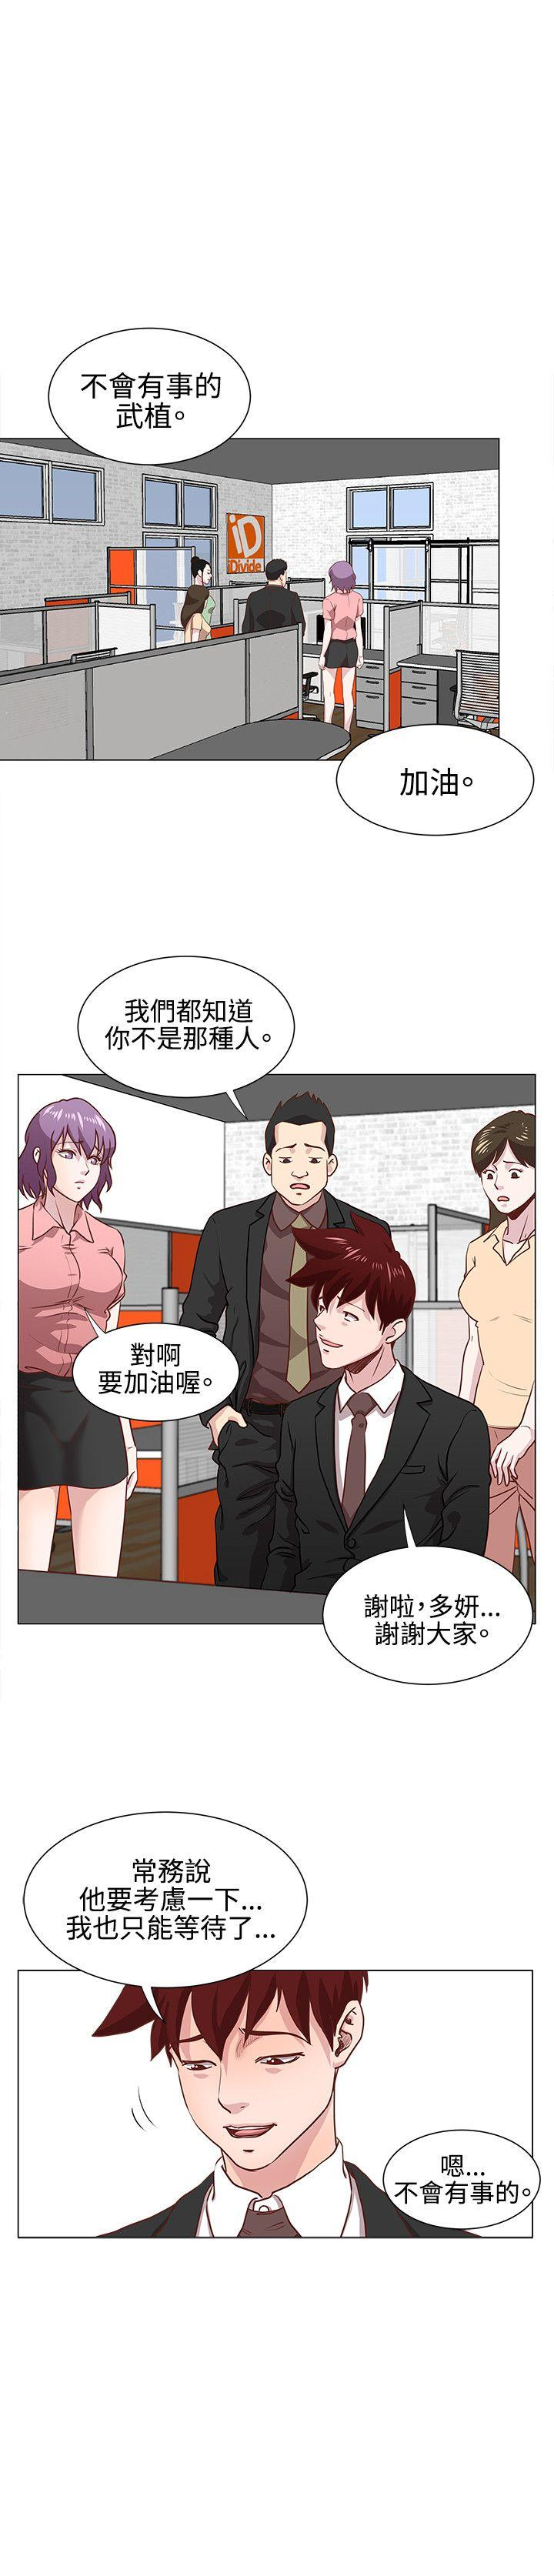 OFFICE TROUBLE 218